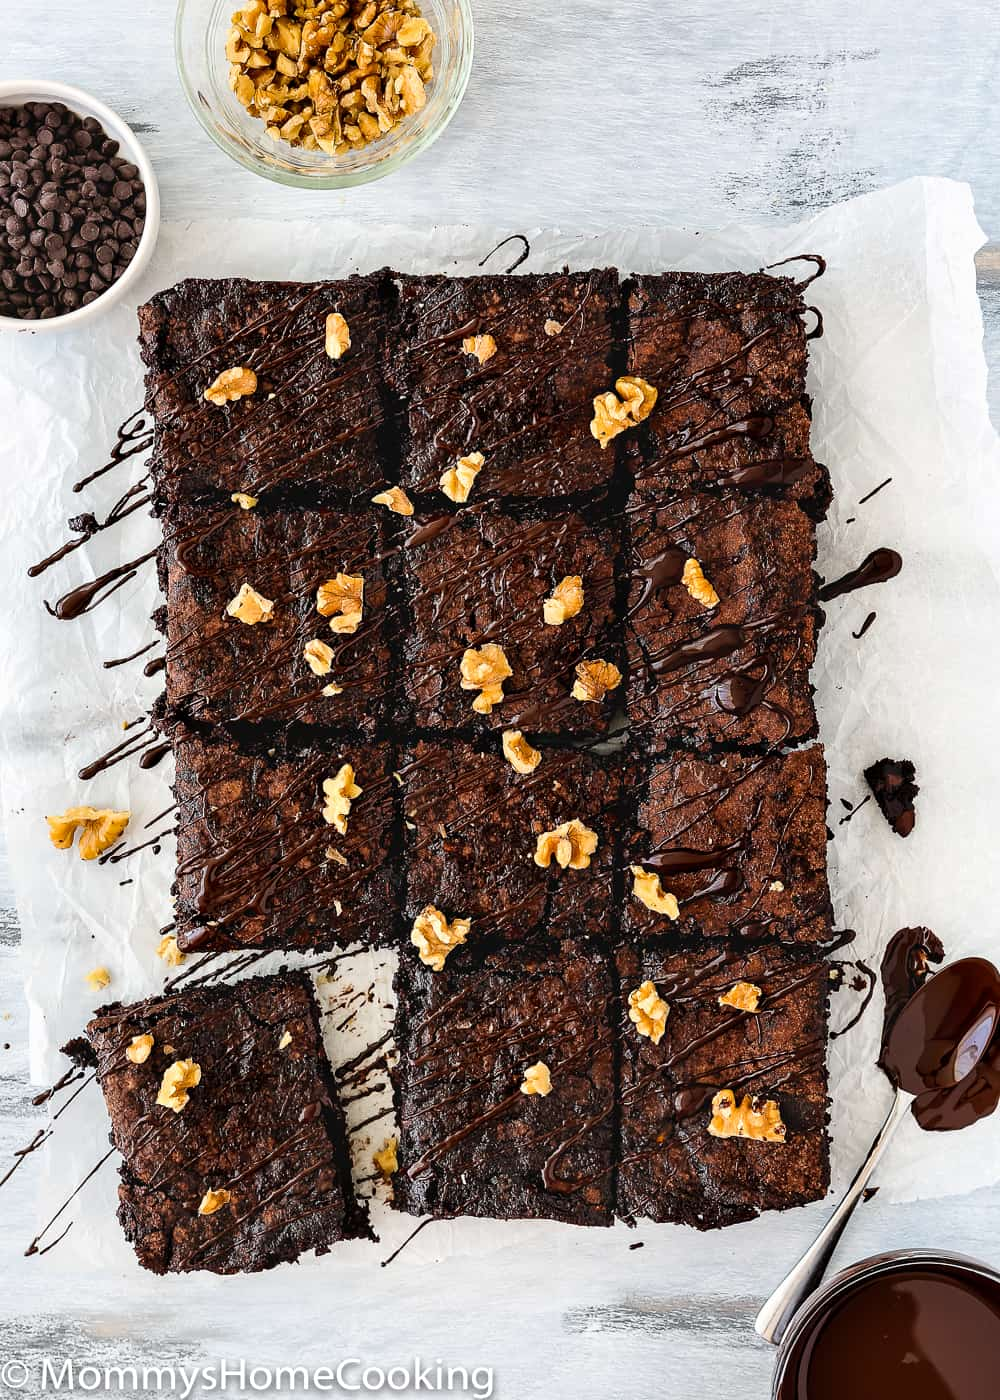 Eggless Fudgy Zucchini Brownies cut into square drizzle with chocolate and chopped walnuts